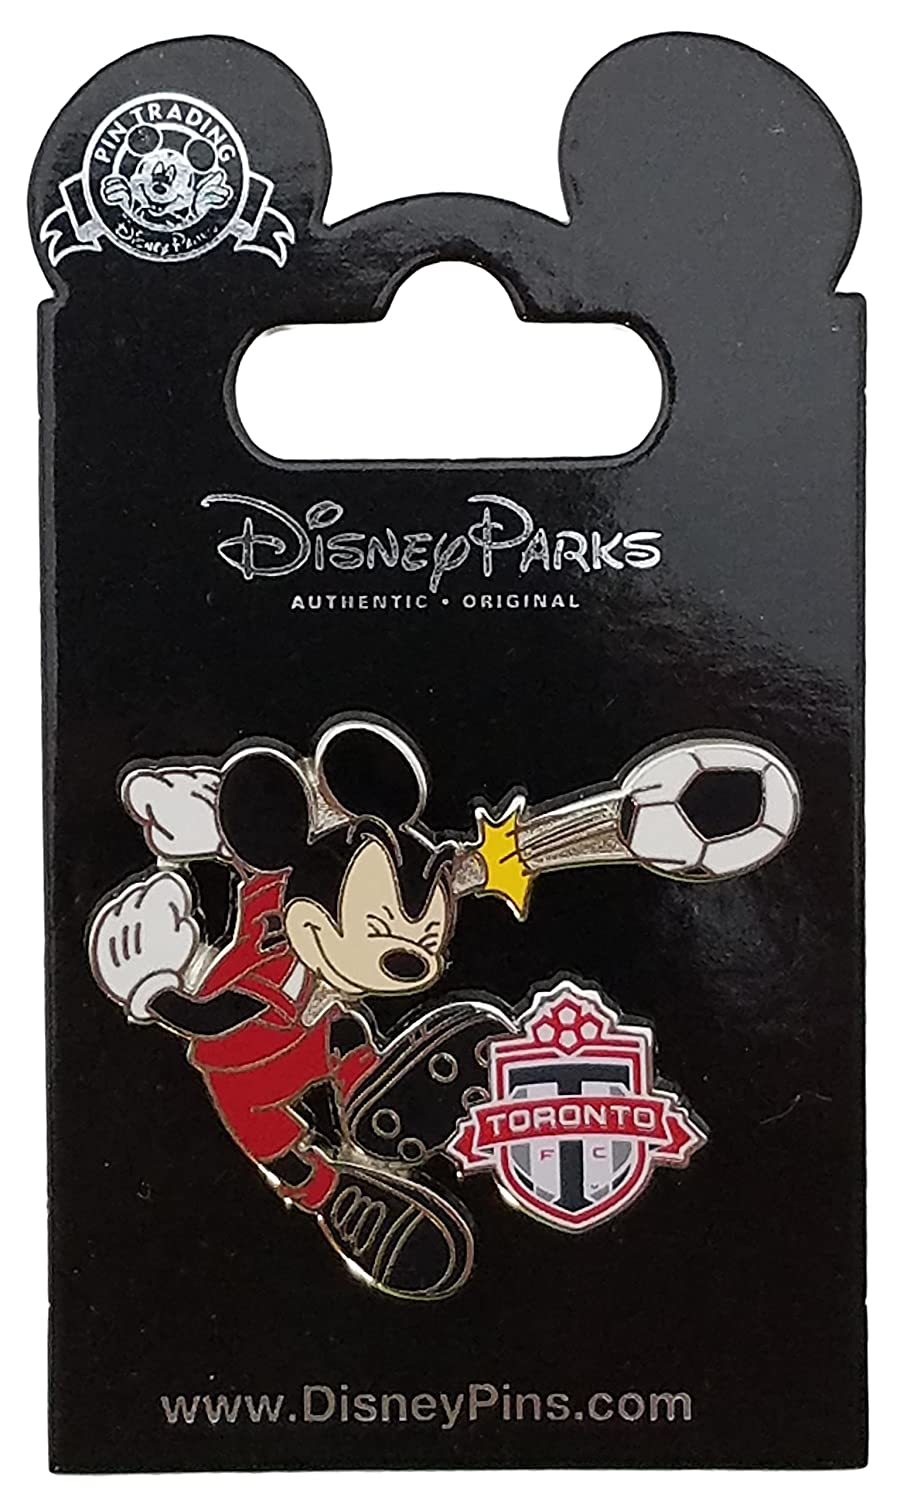 Disney Pin - Mickey Mouse Soccer Pin - Toronto